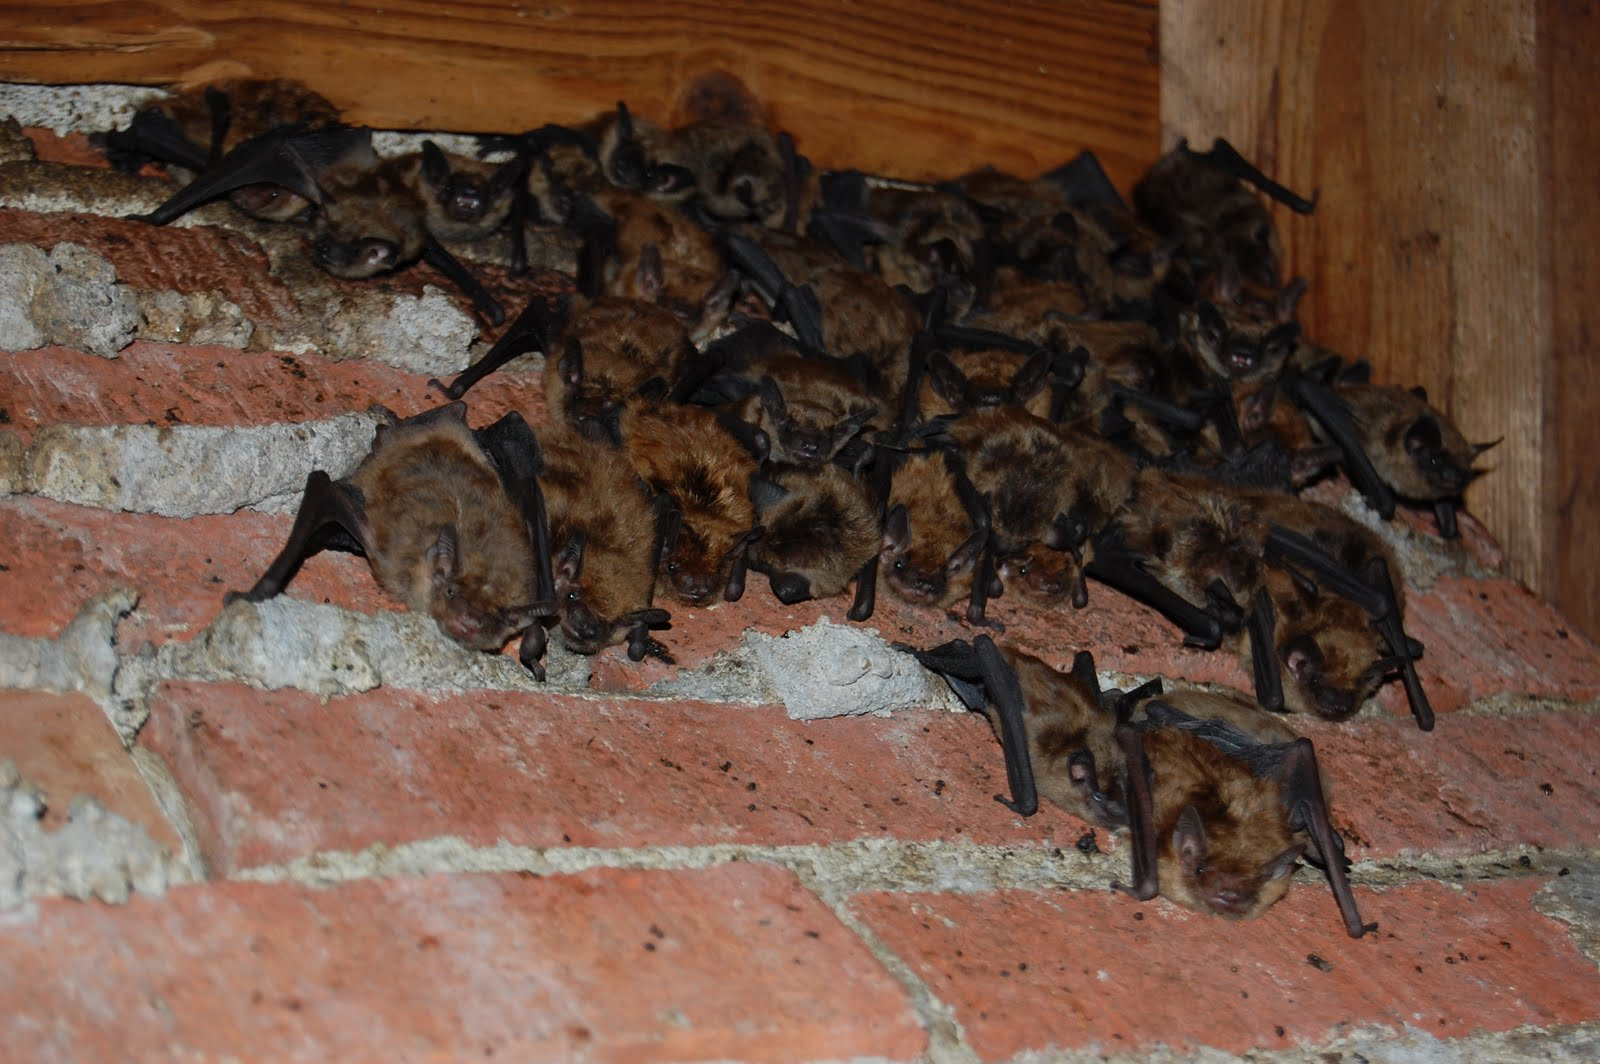 How To Get Rid Of Pests In Your Attic Rodents Insects